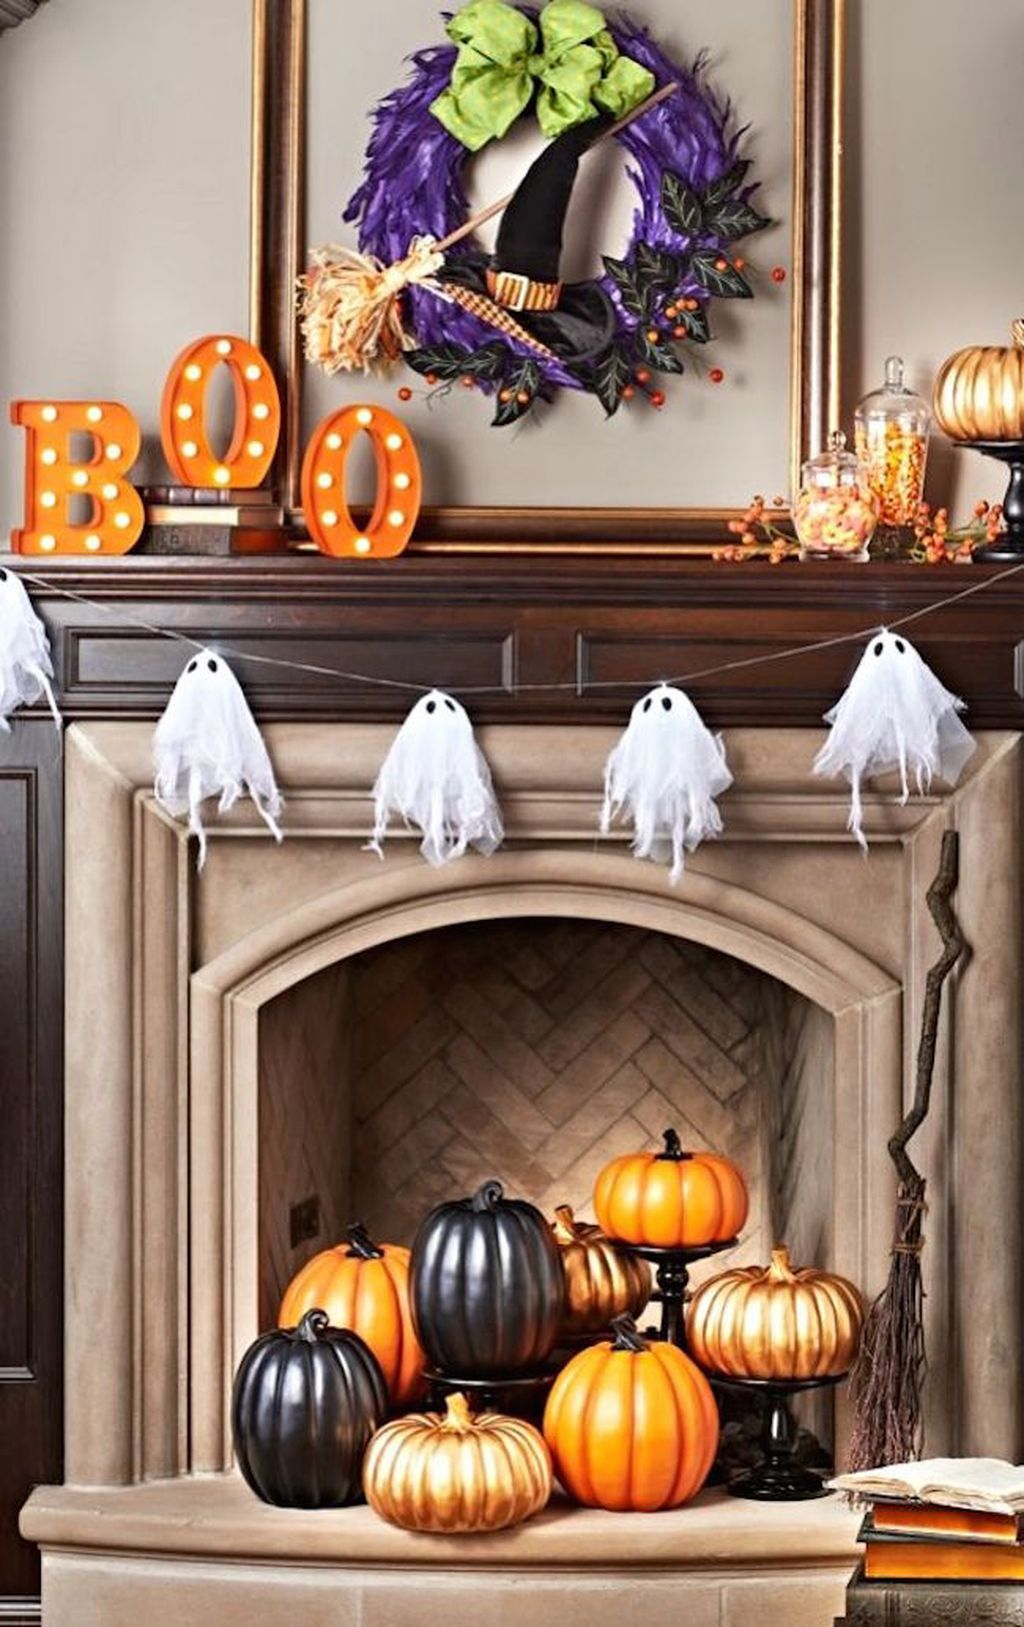 Scary But Classy Halloween Fireplace Decoration Ideas 28